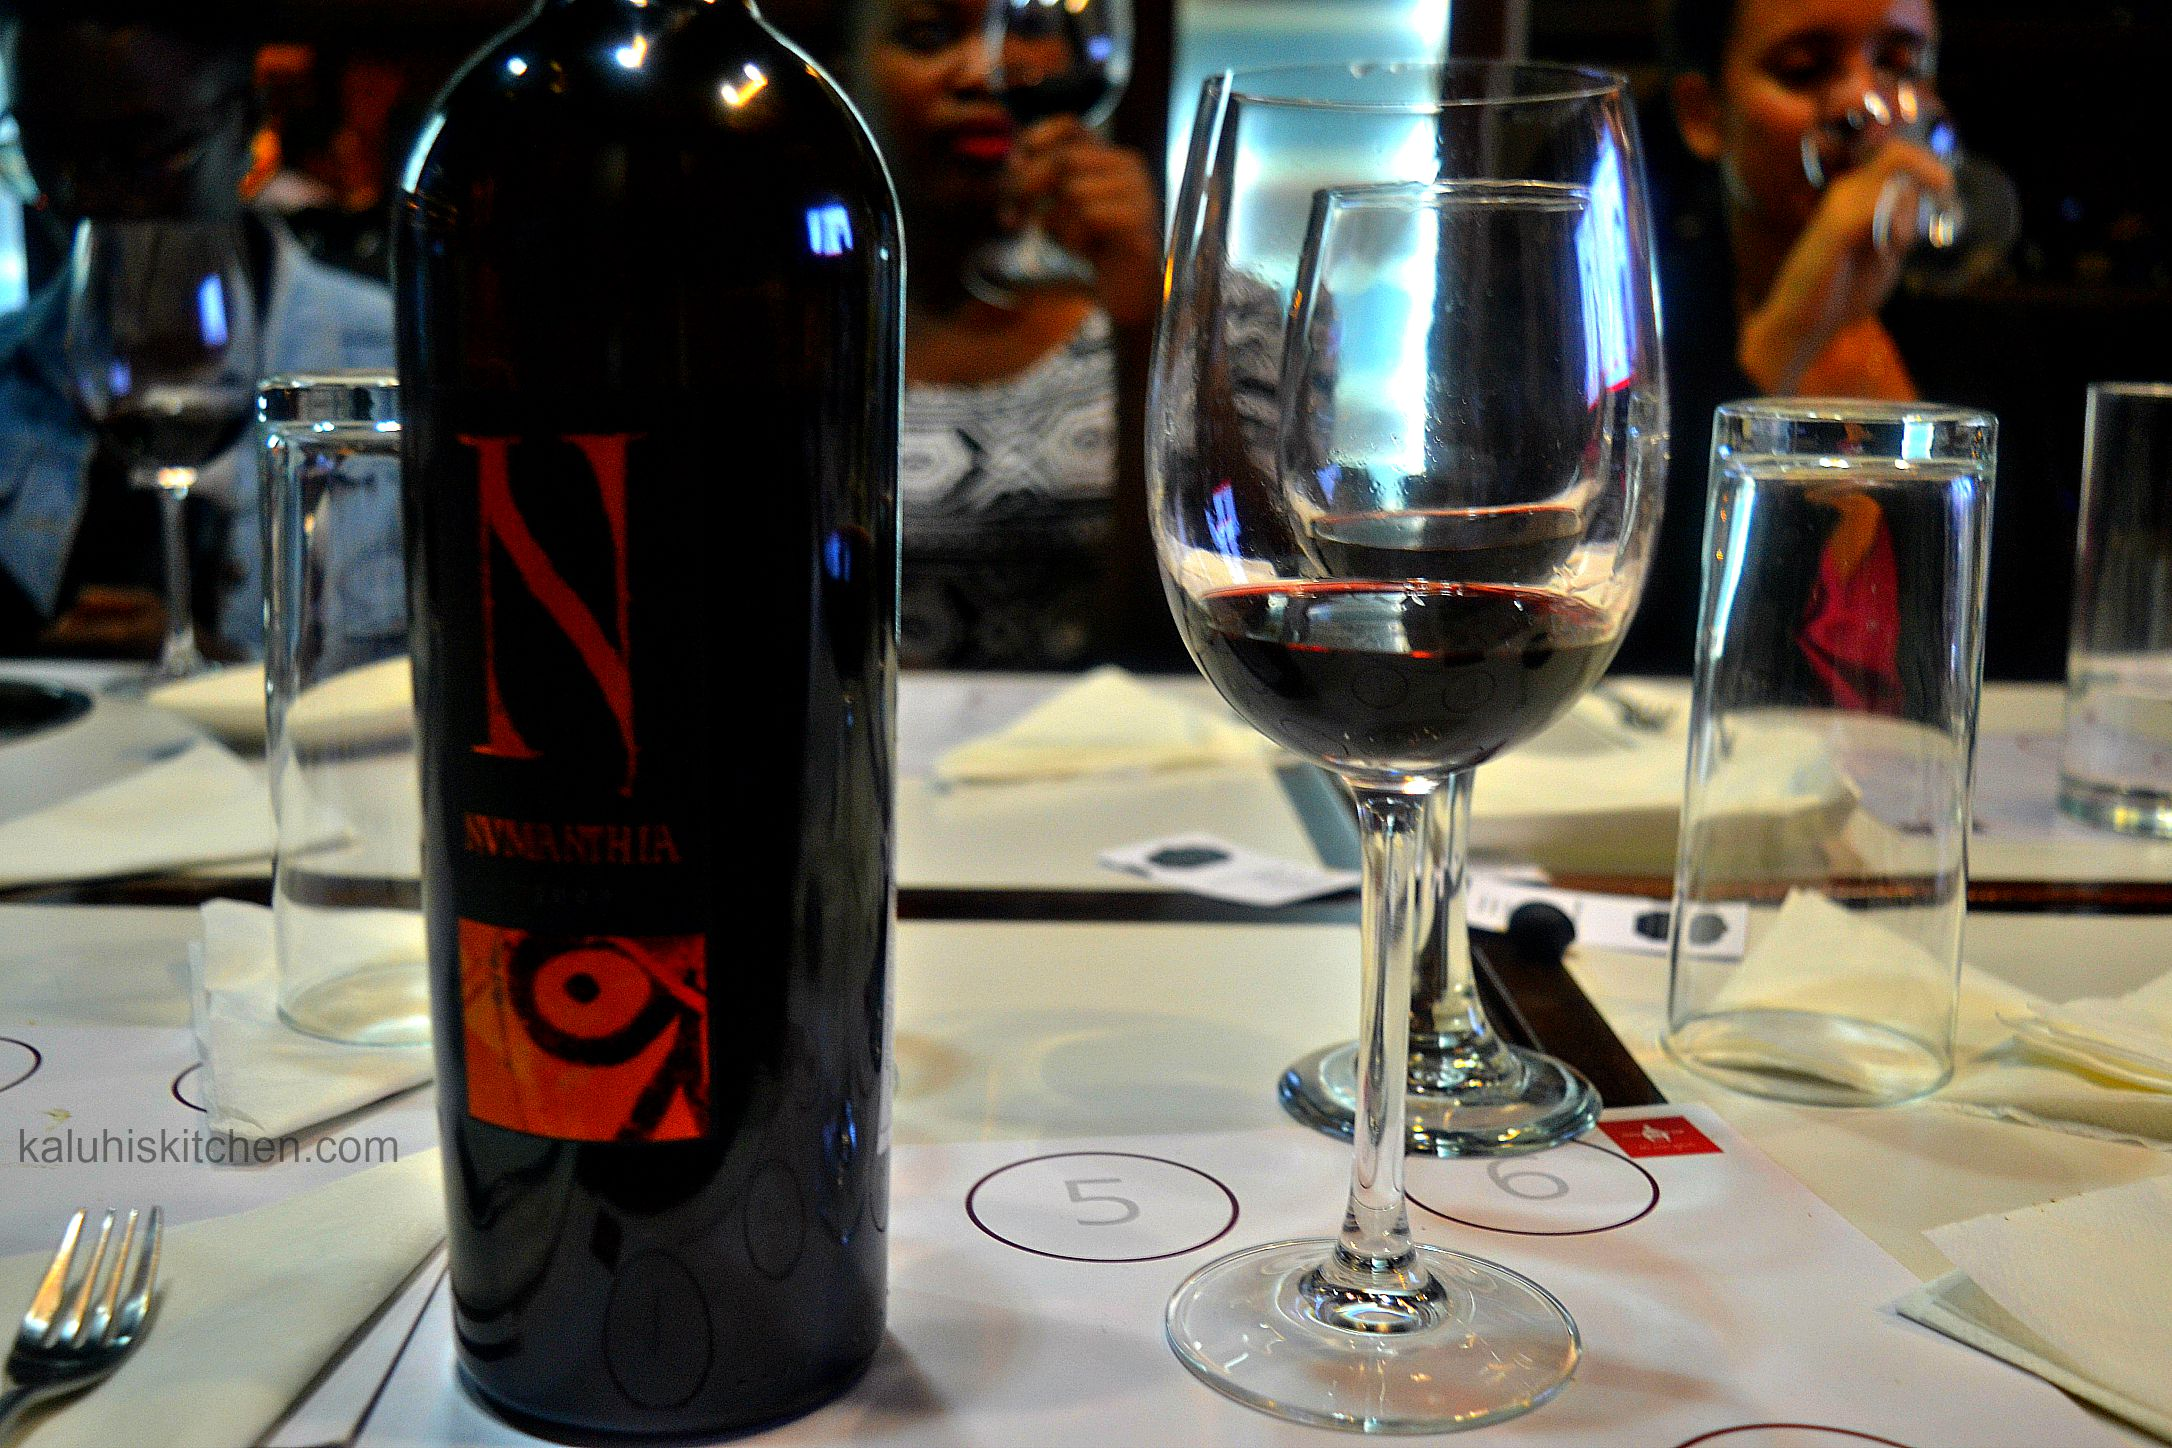 numanthia wine grown from old vines intensifies the flavor_spanish wines served at the salt bar and grill in nairobi_kaluhiskitchen.com